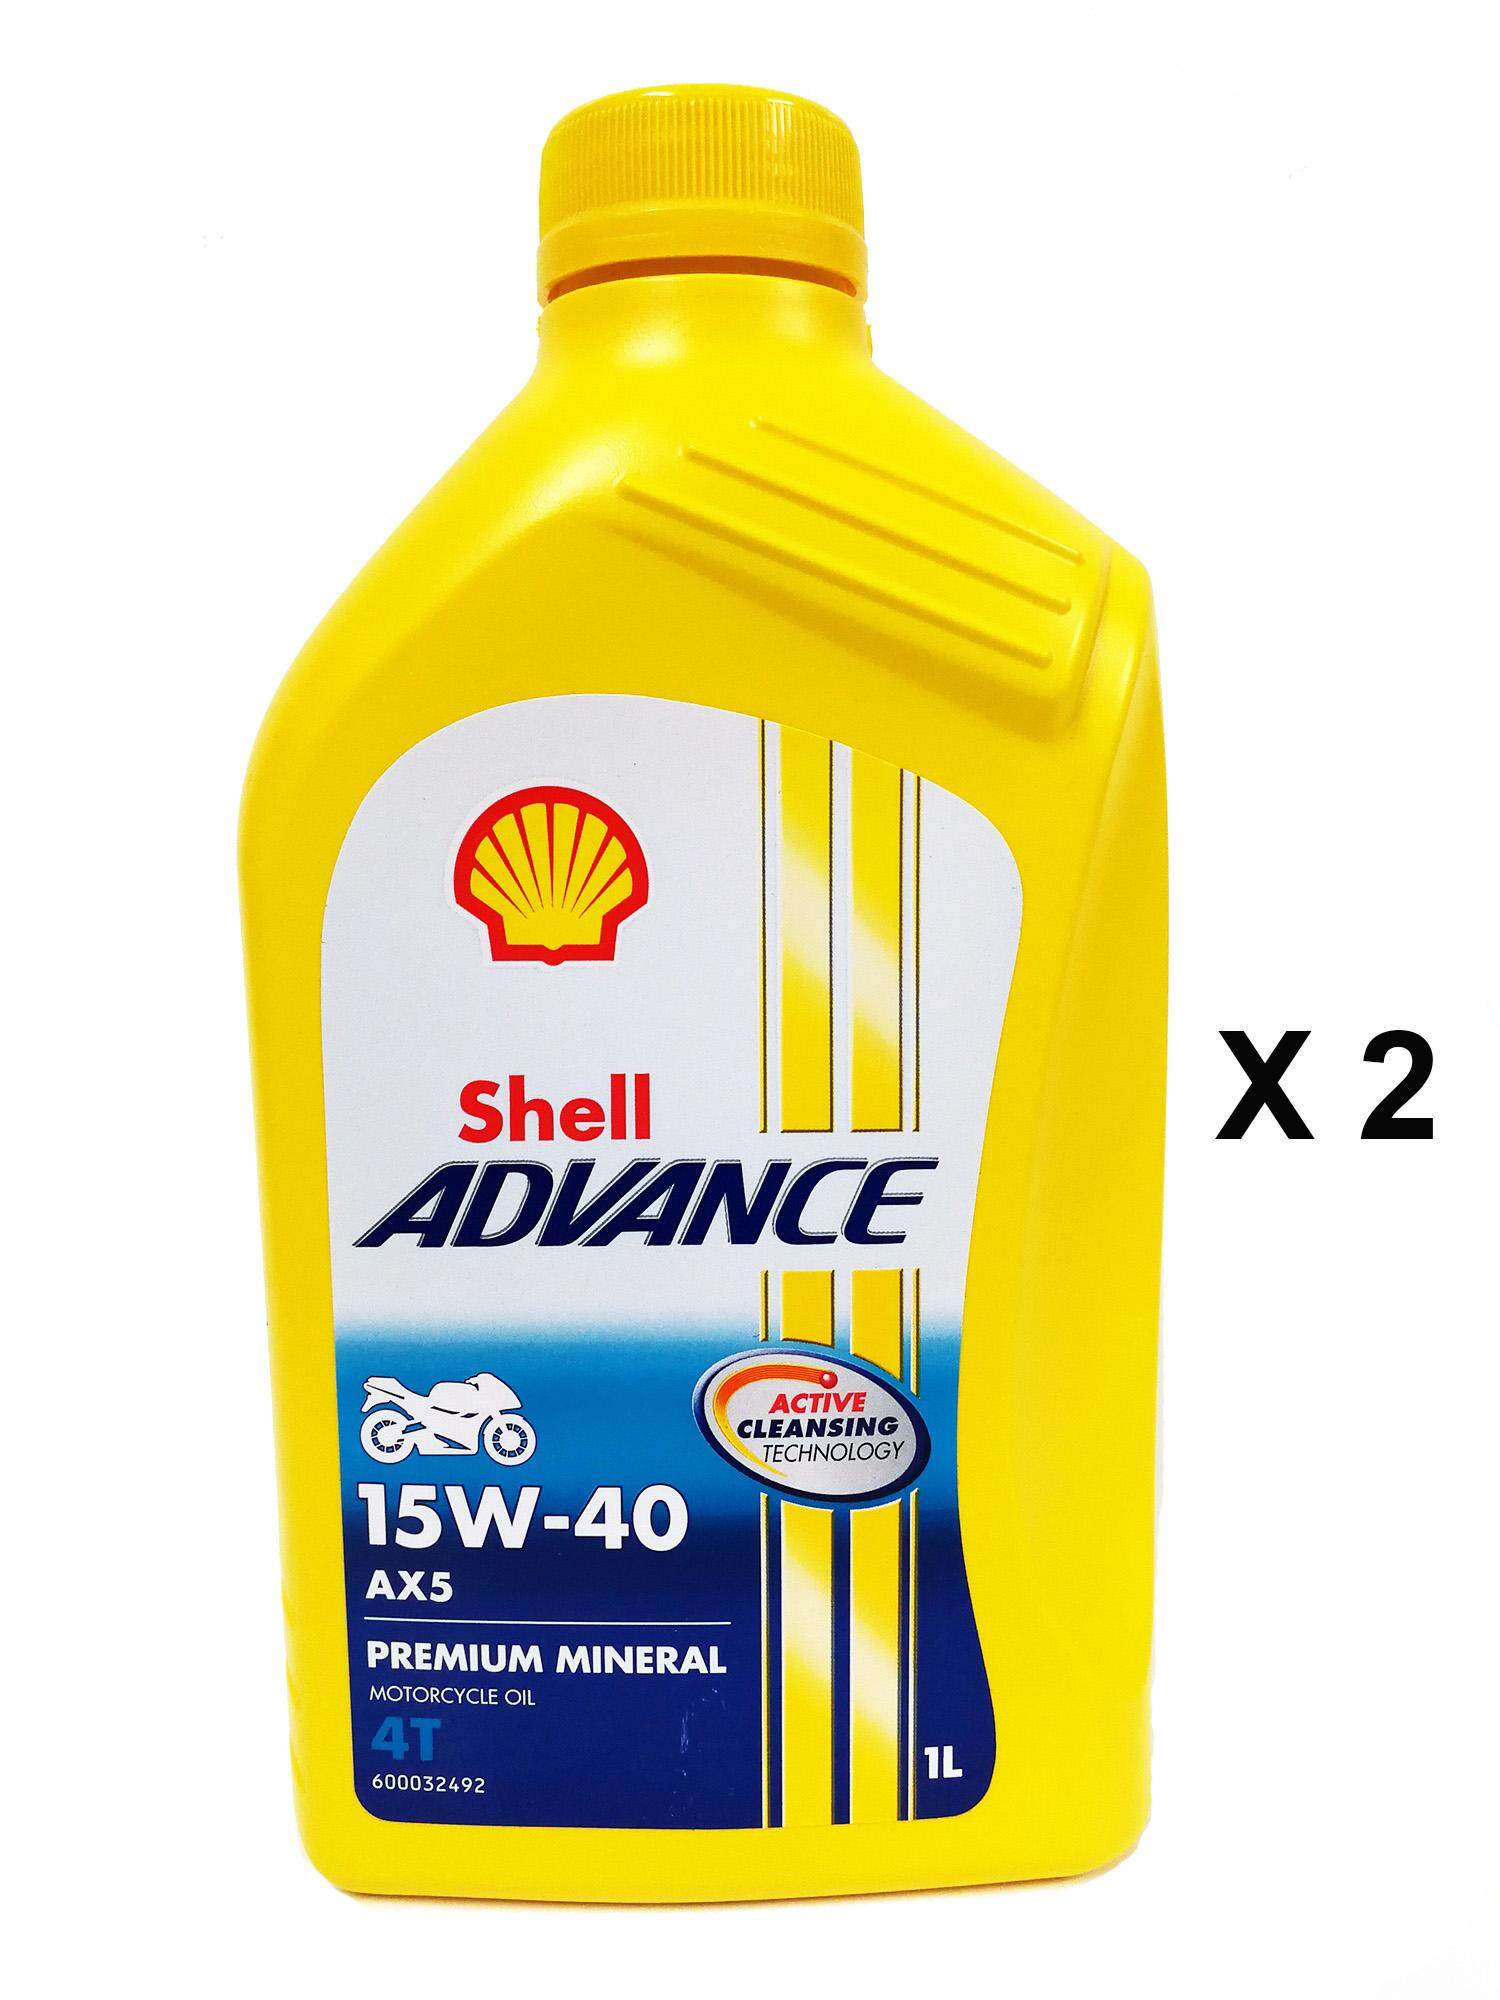 Shell Products For The Best Prices In Malaysia Helix Hx5 15w 40 Api Sn Oli Mobil Mesin Bensin 4 Liter Advance 4t Ax5 15w40 Lubricant Motorcycle Engine Oil 1l X2